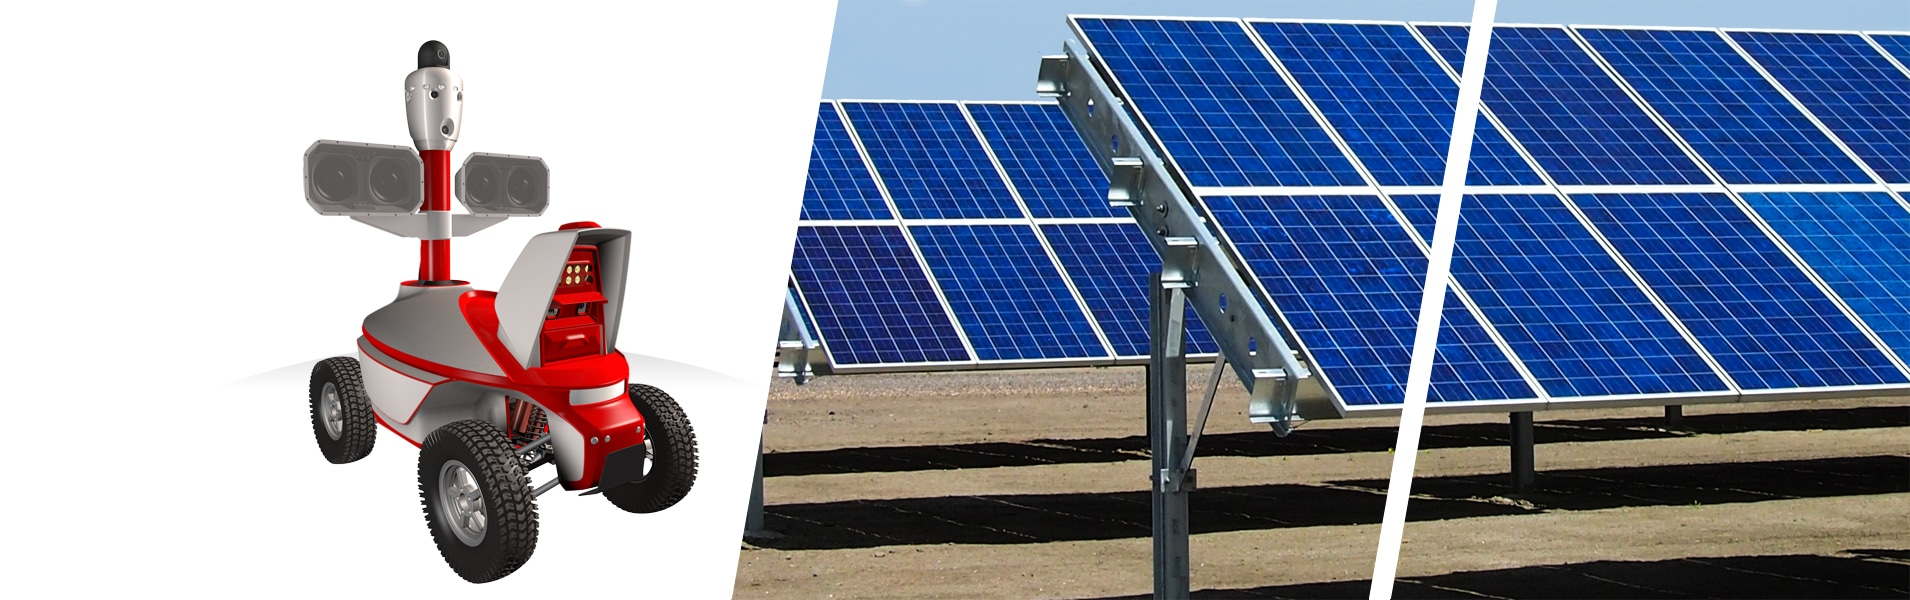 solar power plant security guard robot